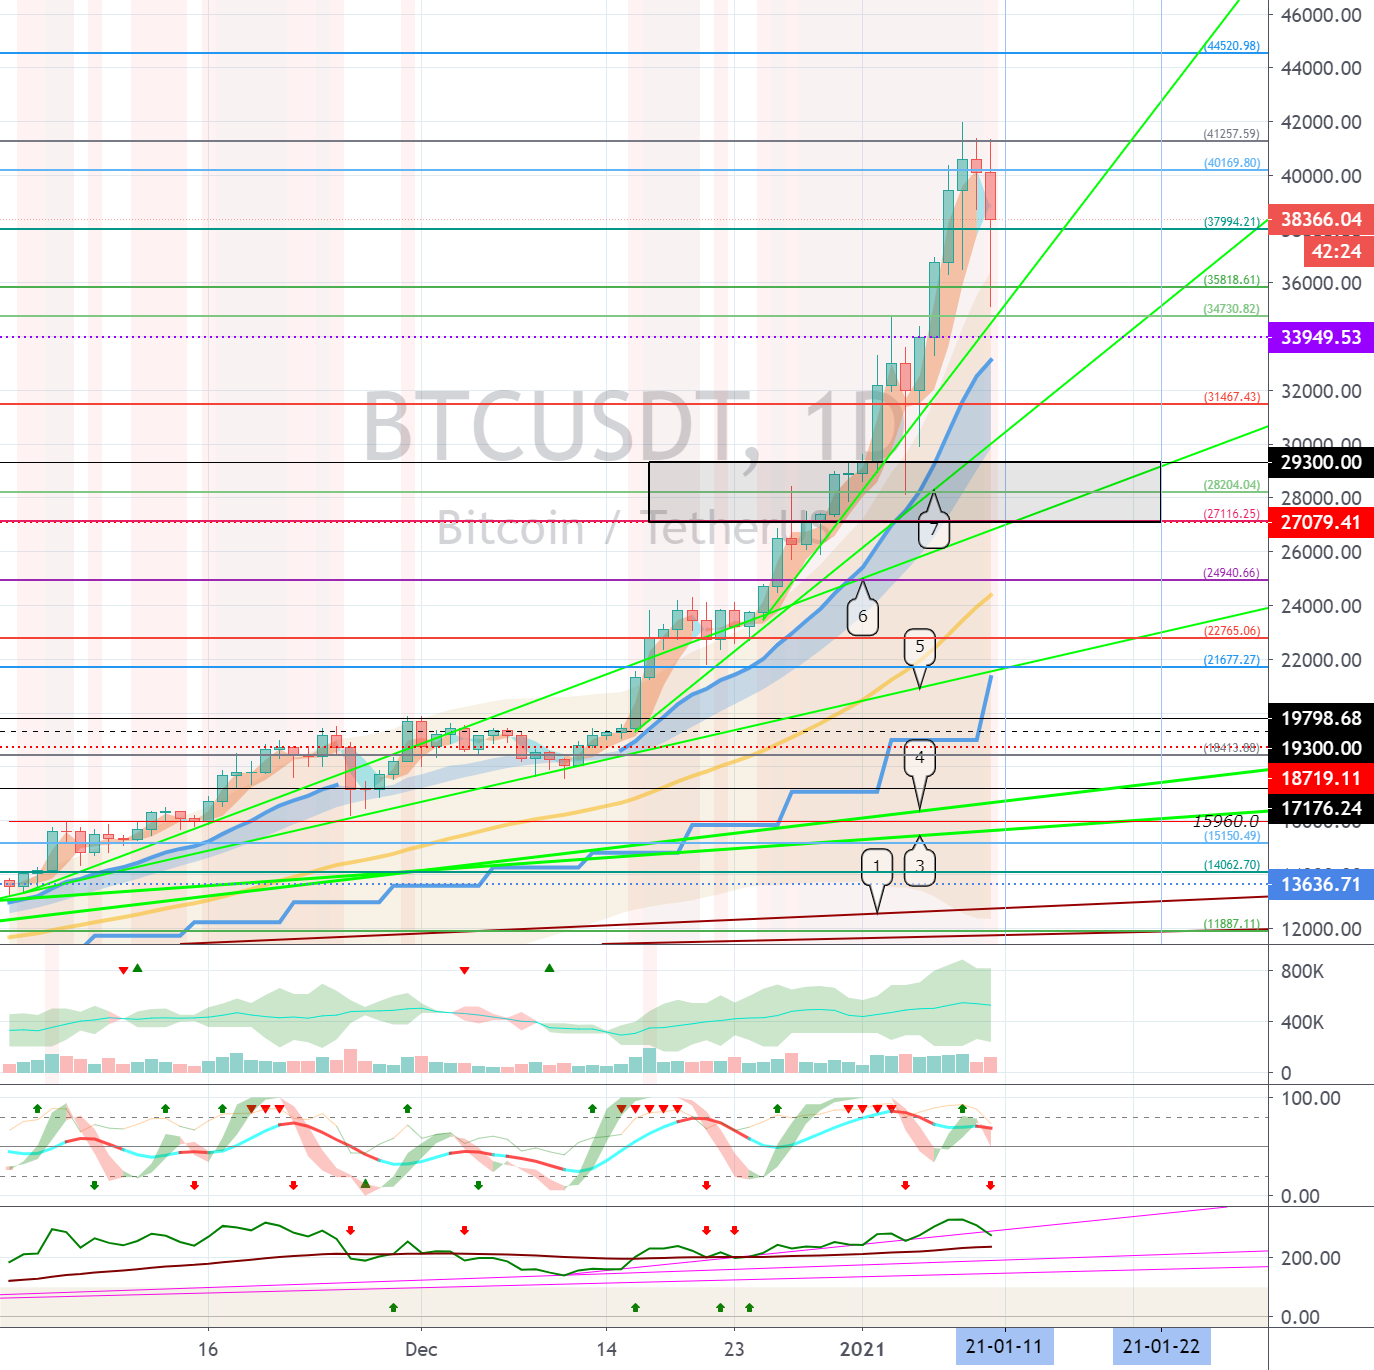 Bitcoin (BTC) - January 11